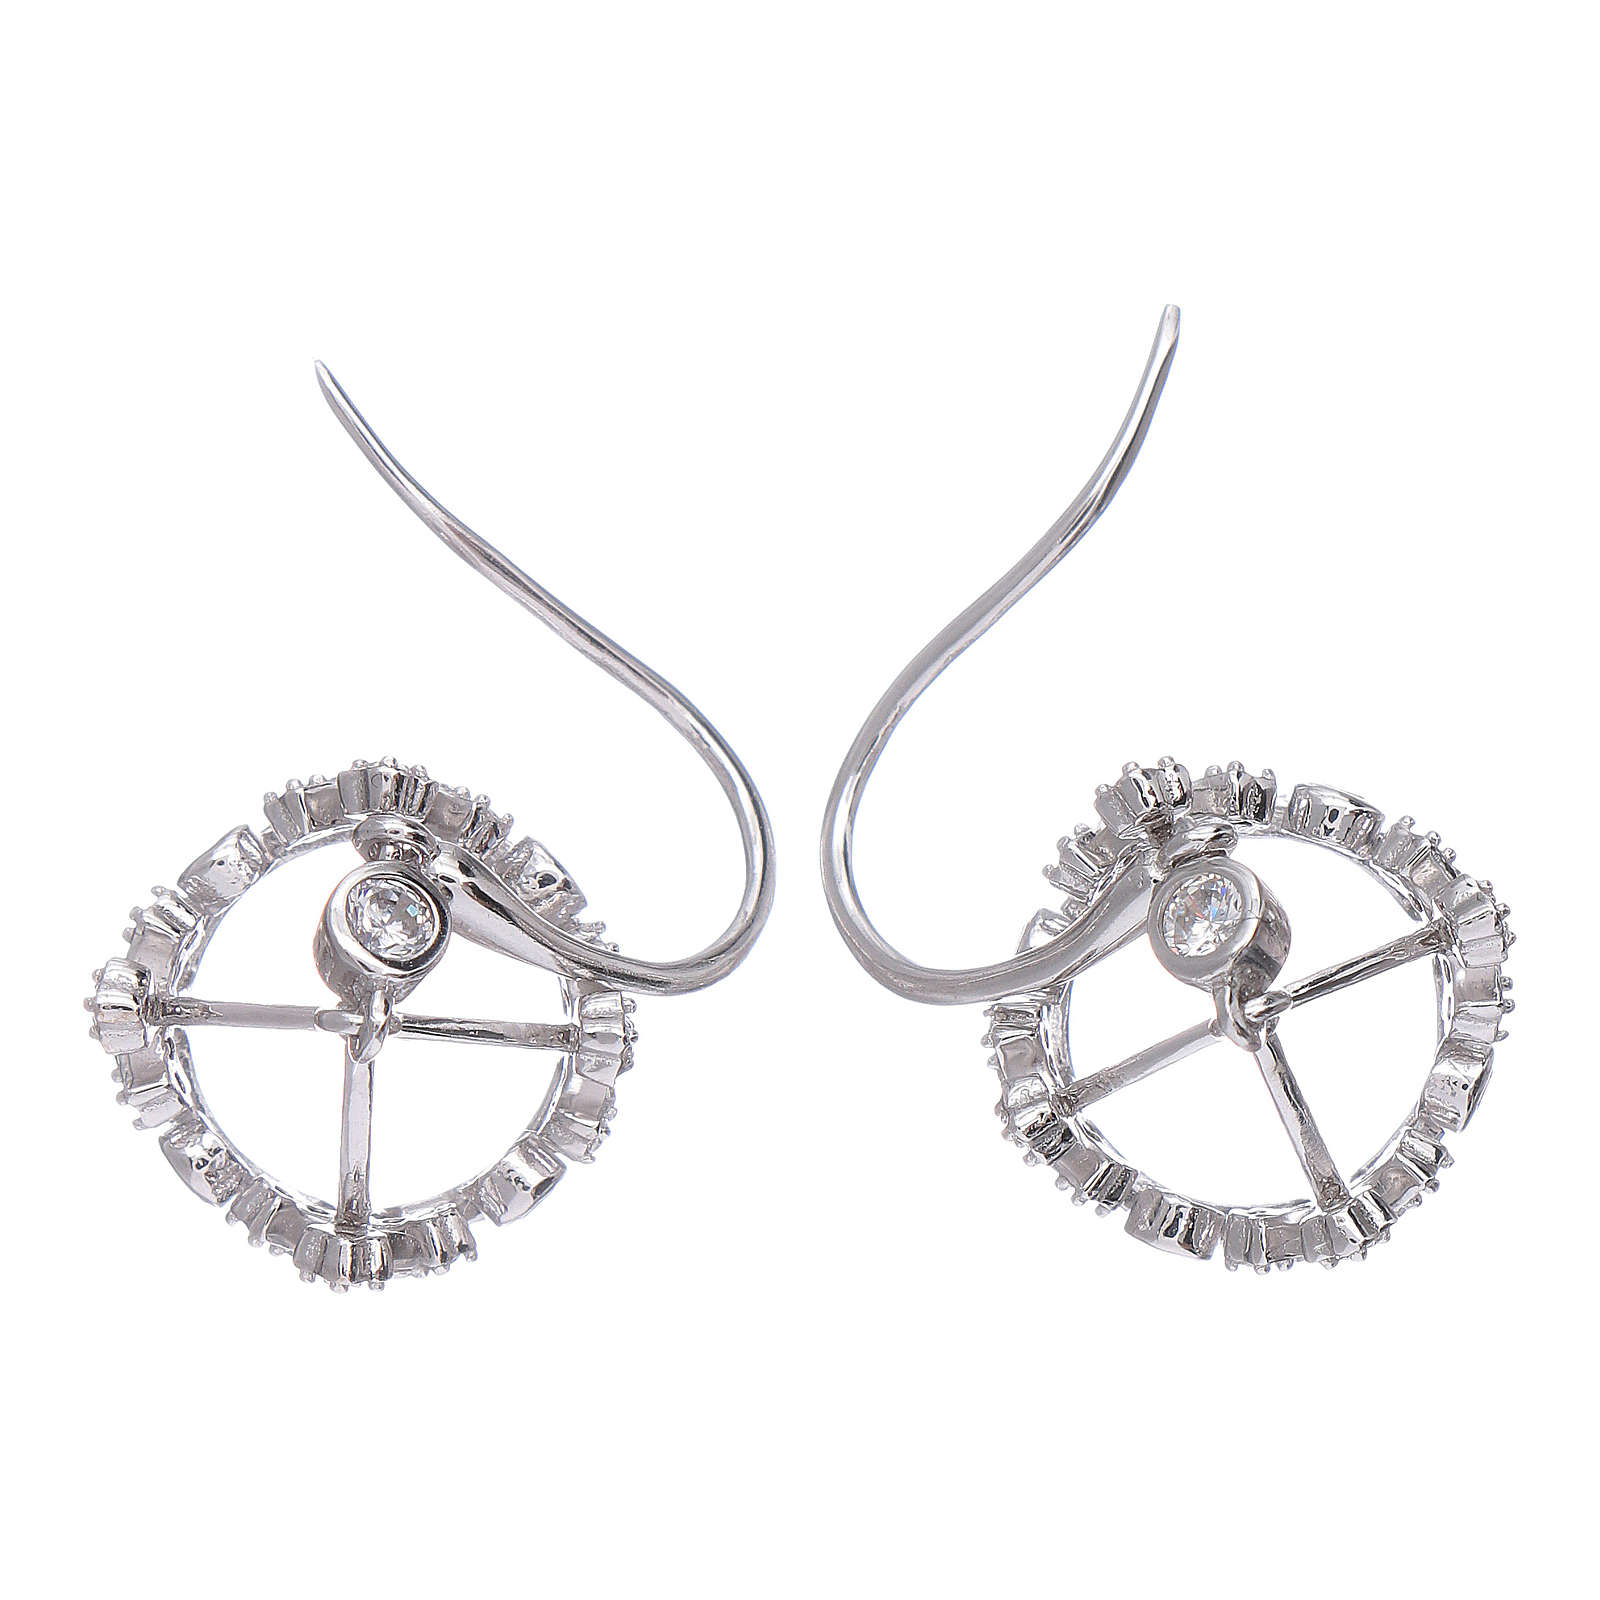 Earrings AMEN pendant in 925 sterling silver crown shape with clover cross and white zircons 4